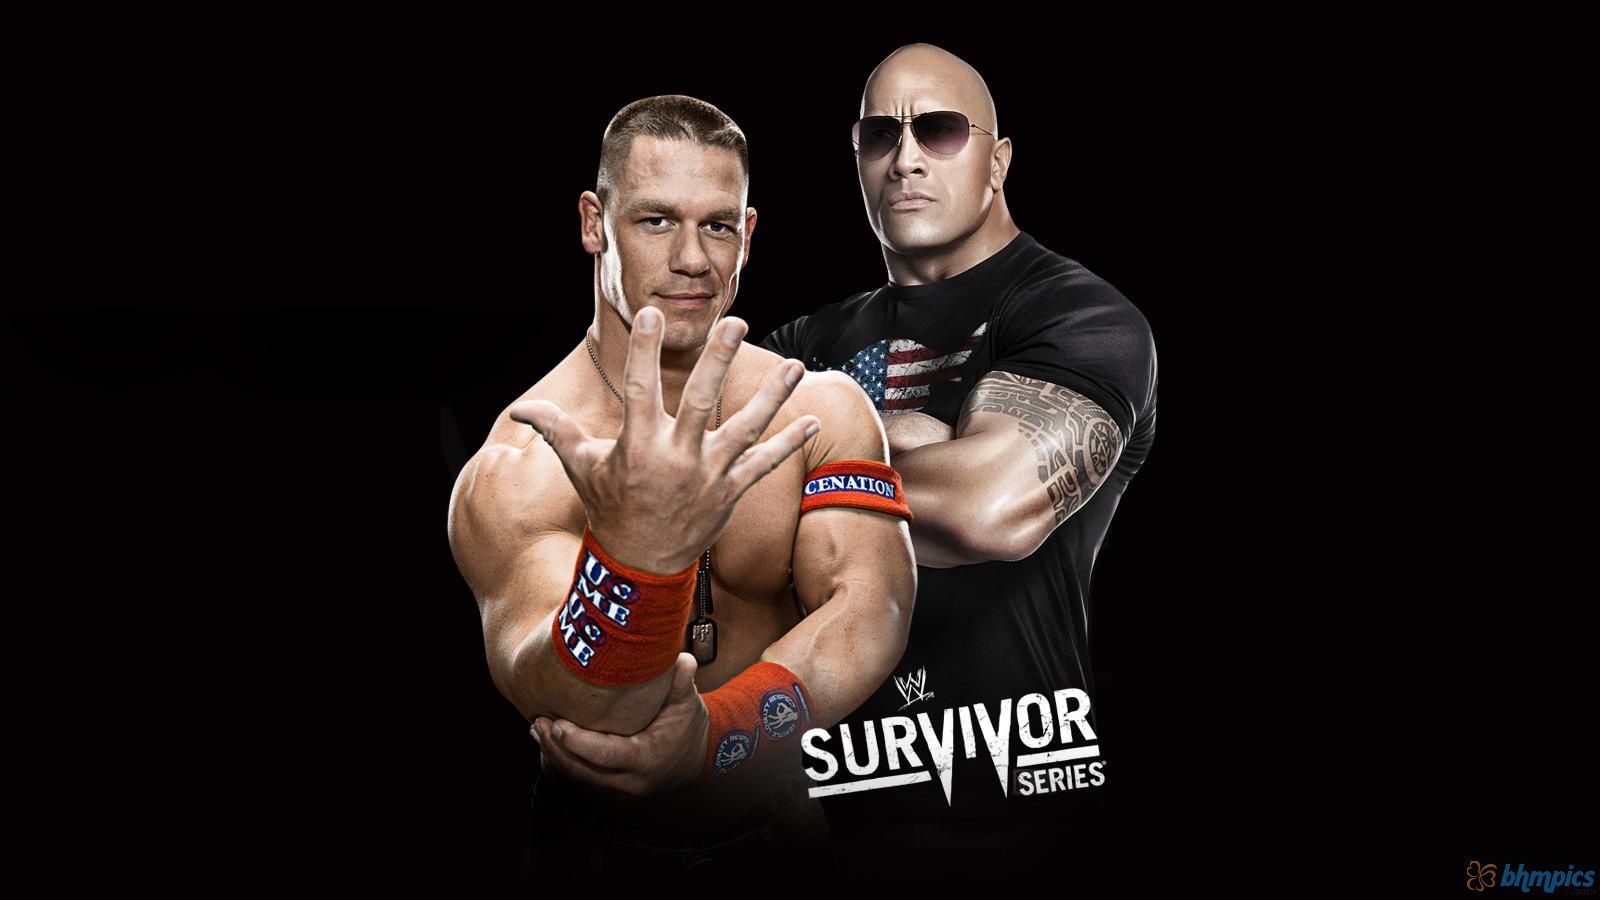 Wwe John Cena And The Rock Hd Wallpaper Survivor Series Stuff To